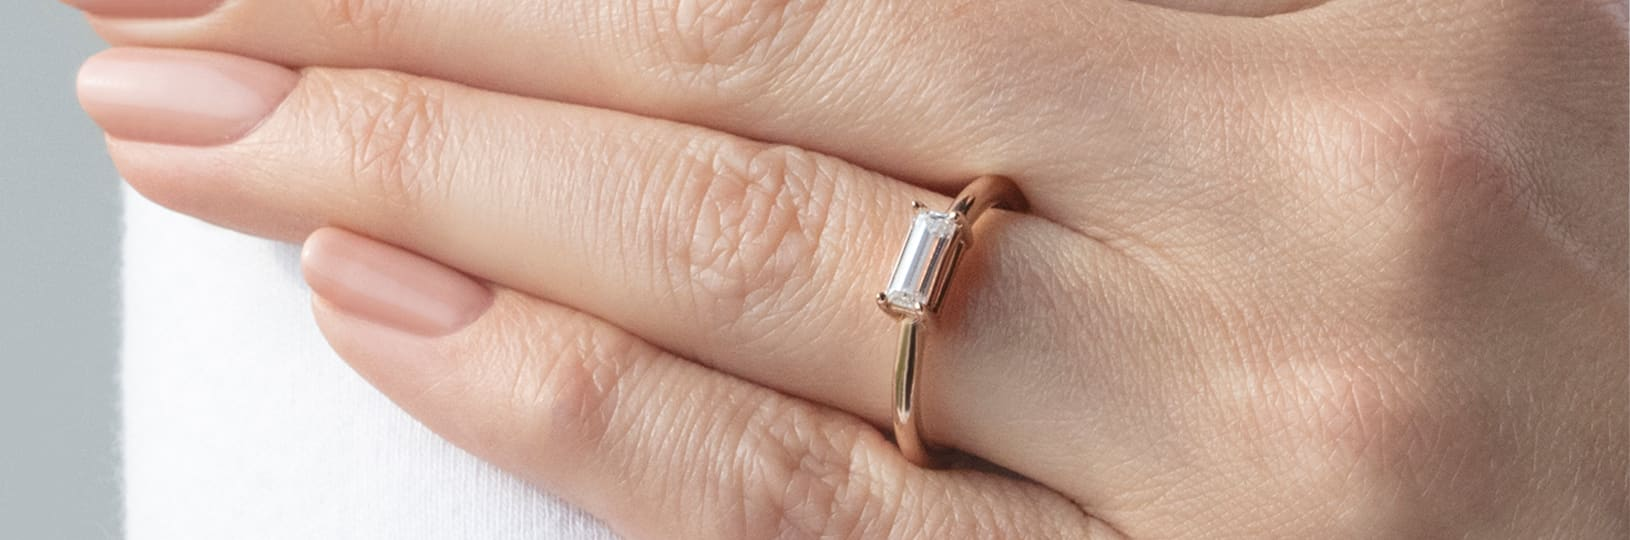 what is a promise ring